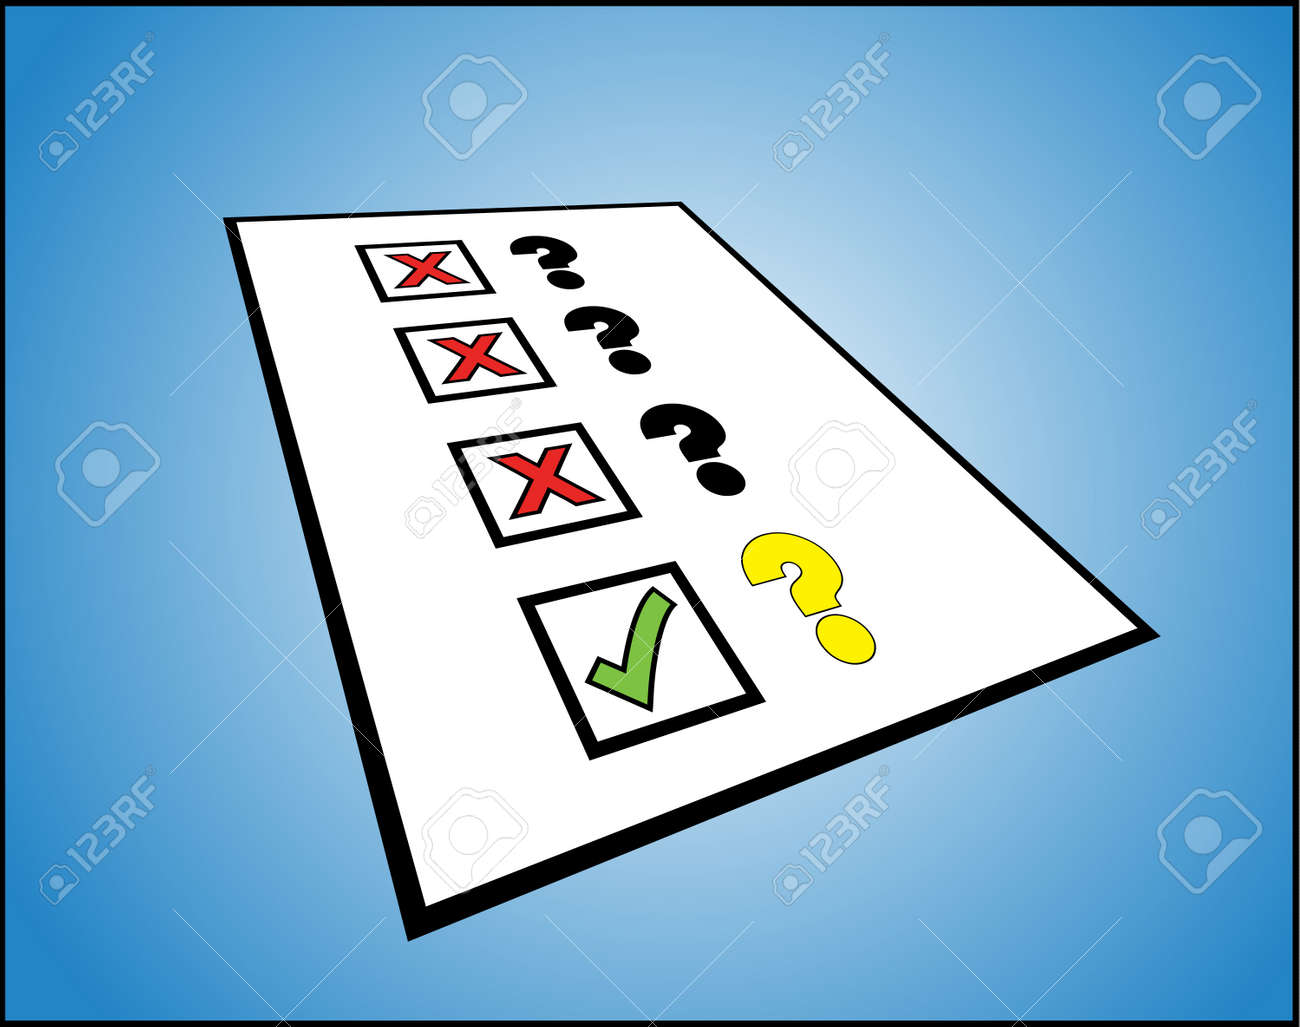 the right question - A list of question marks with the right and wrong tick box against them Stock Photo - 17613159